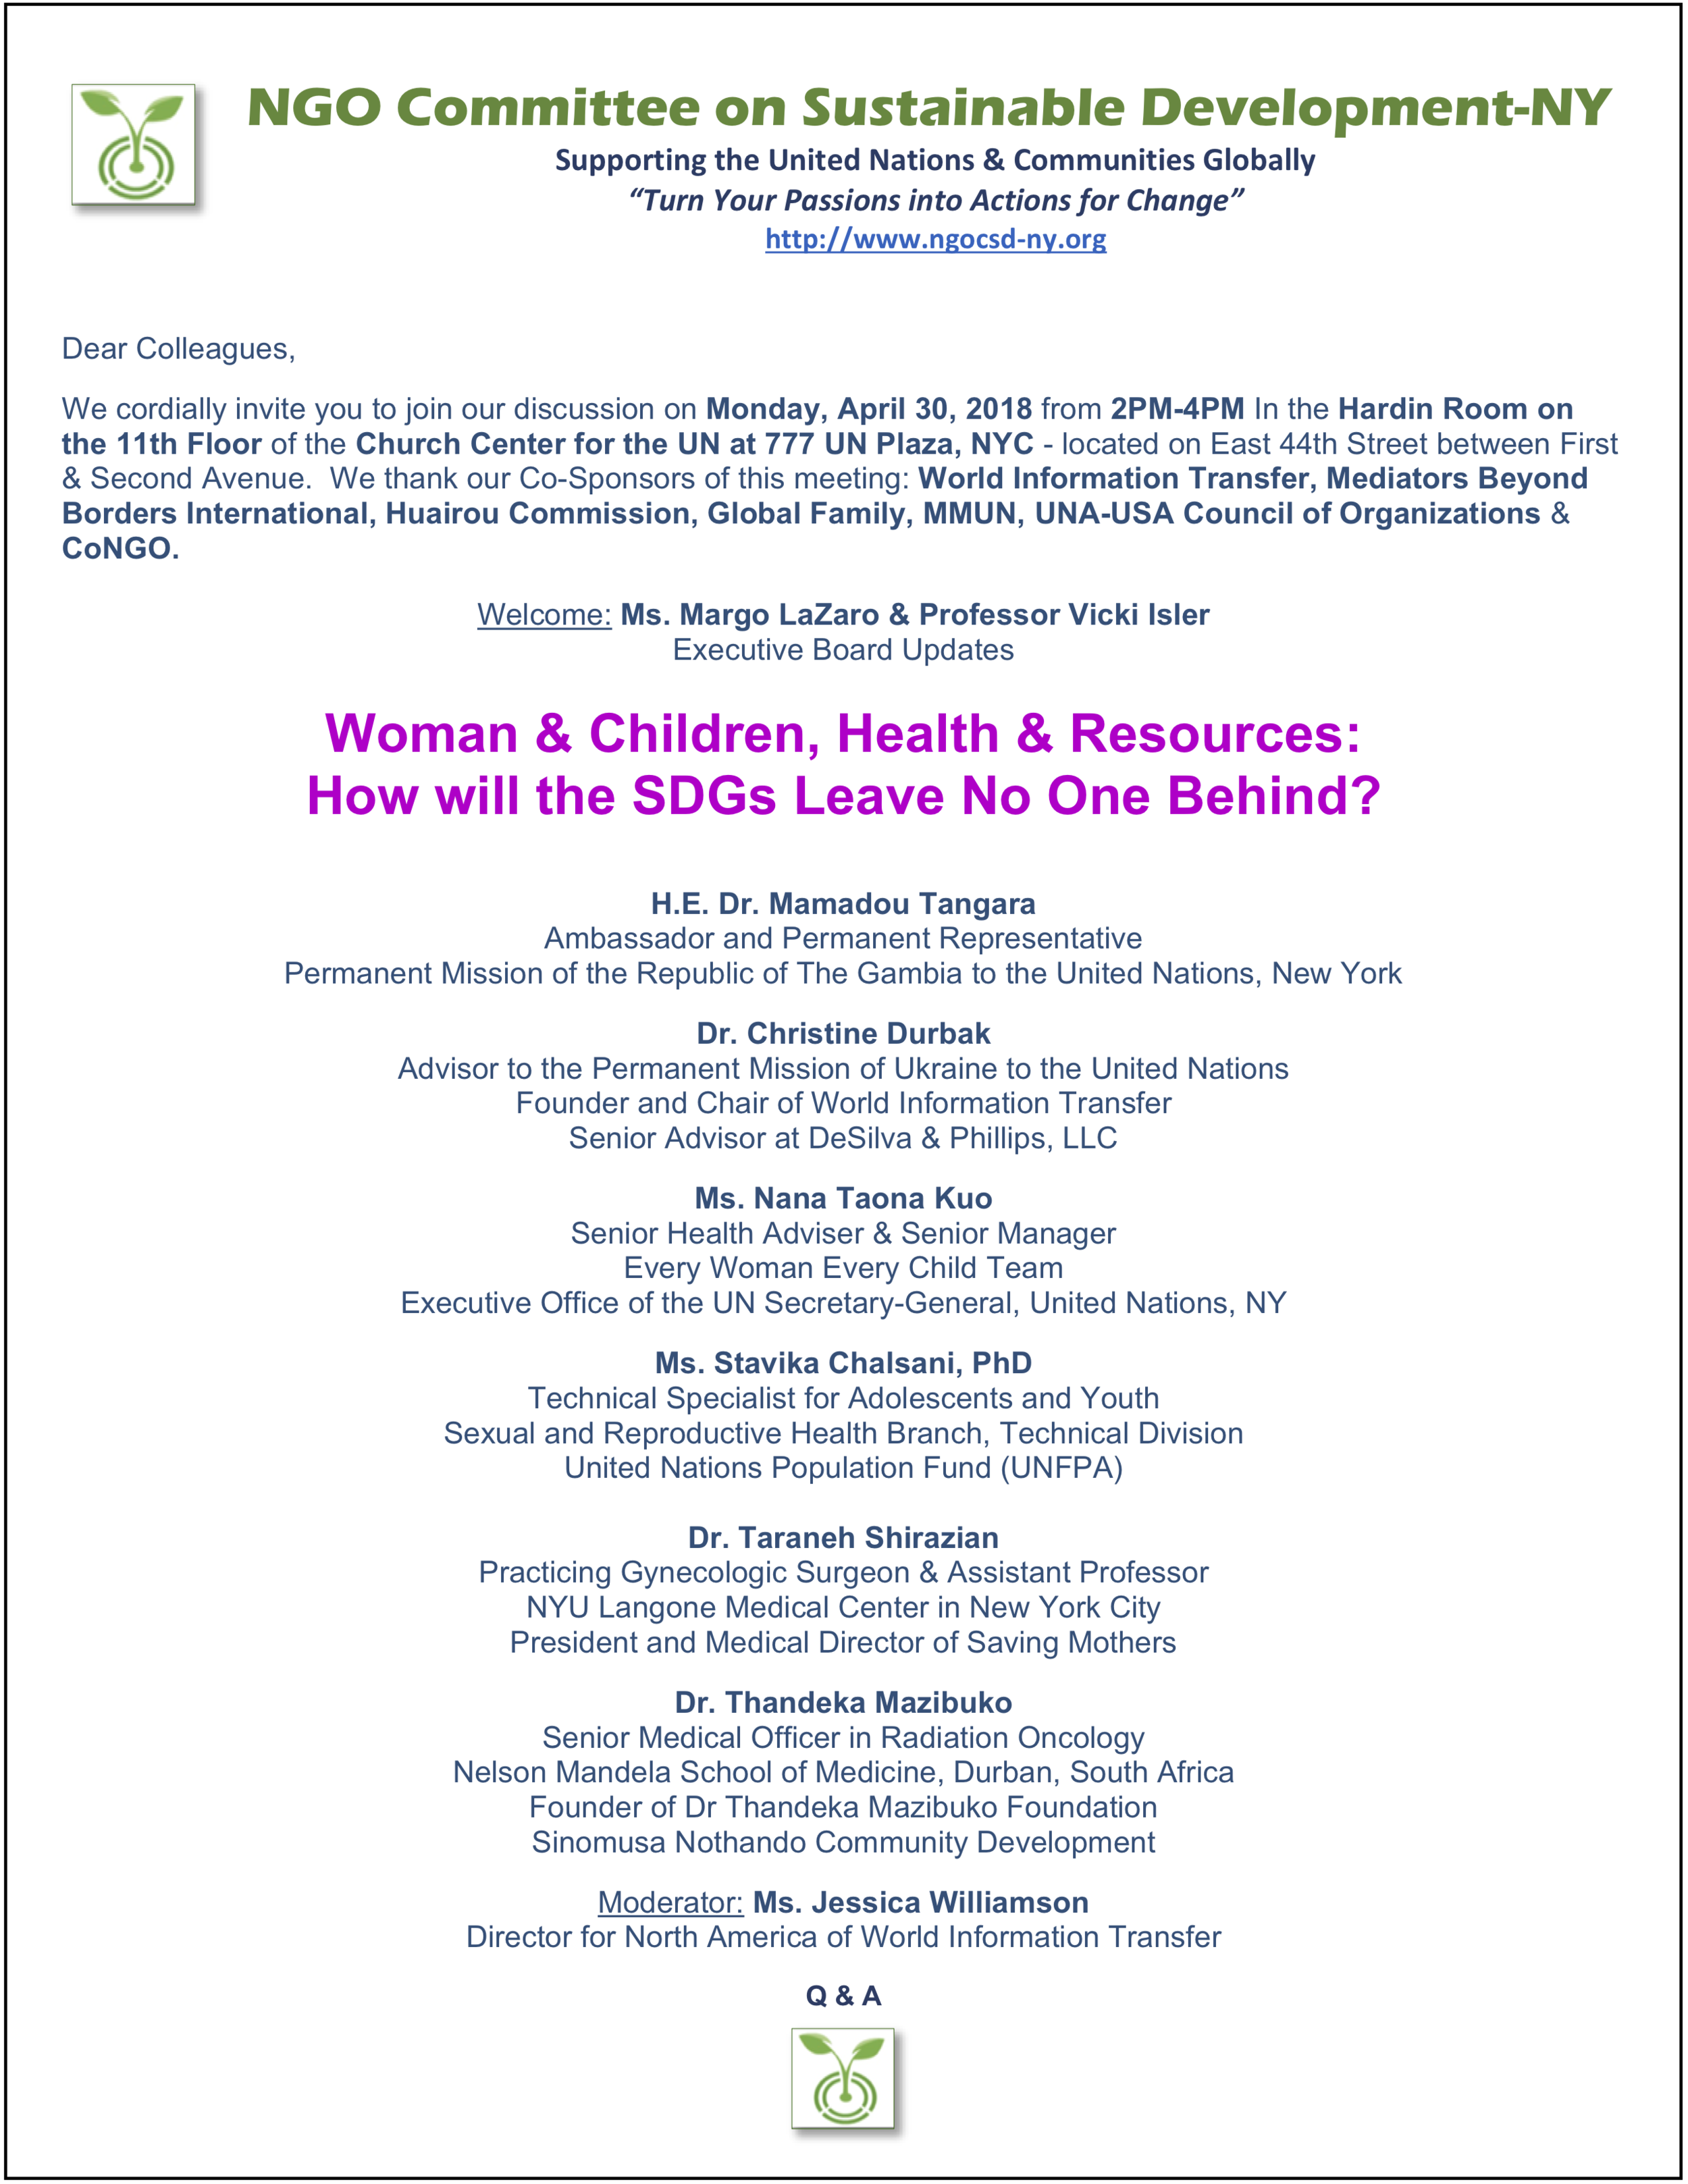 NGOCSD-NY+4-30-18+Women+&+Children+&+SDGs+Invitation+A1.png